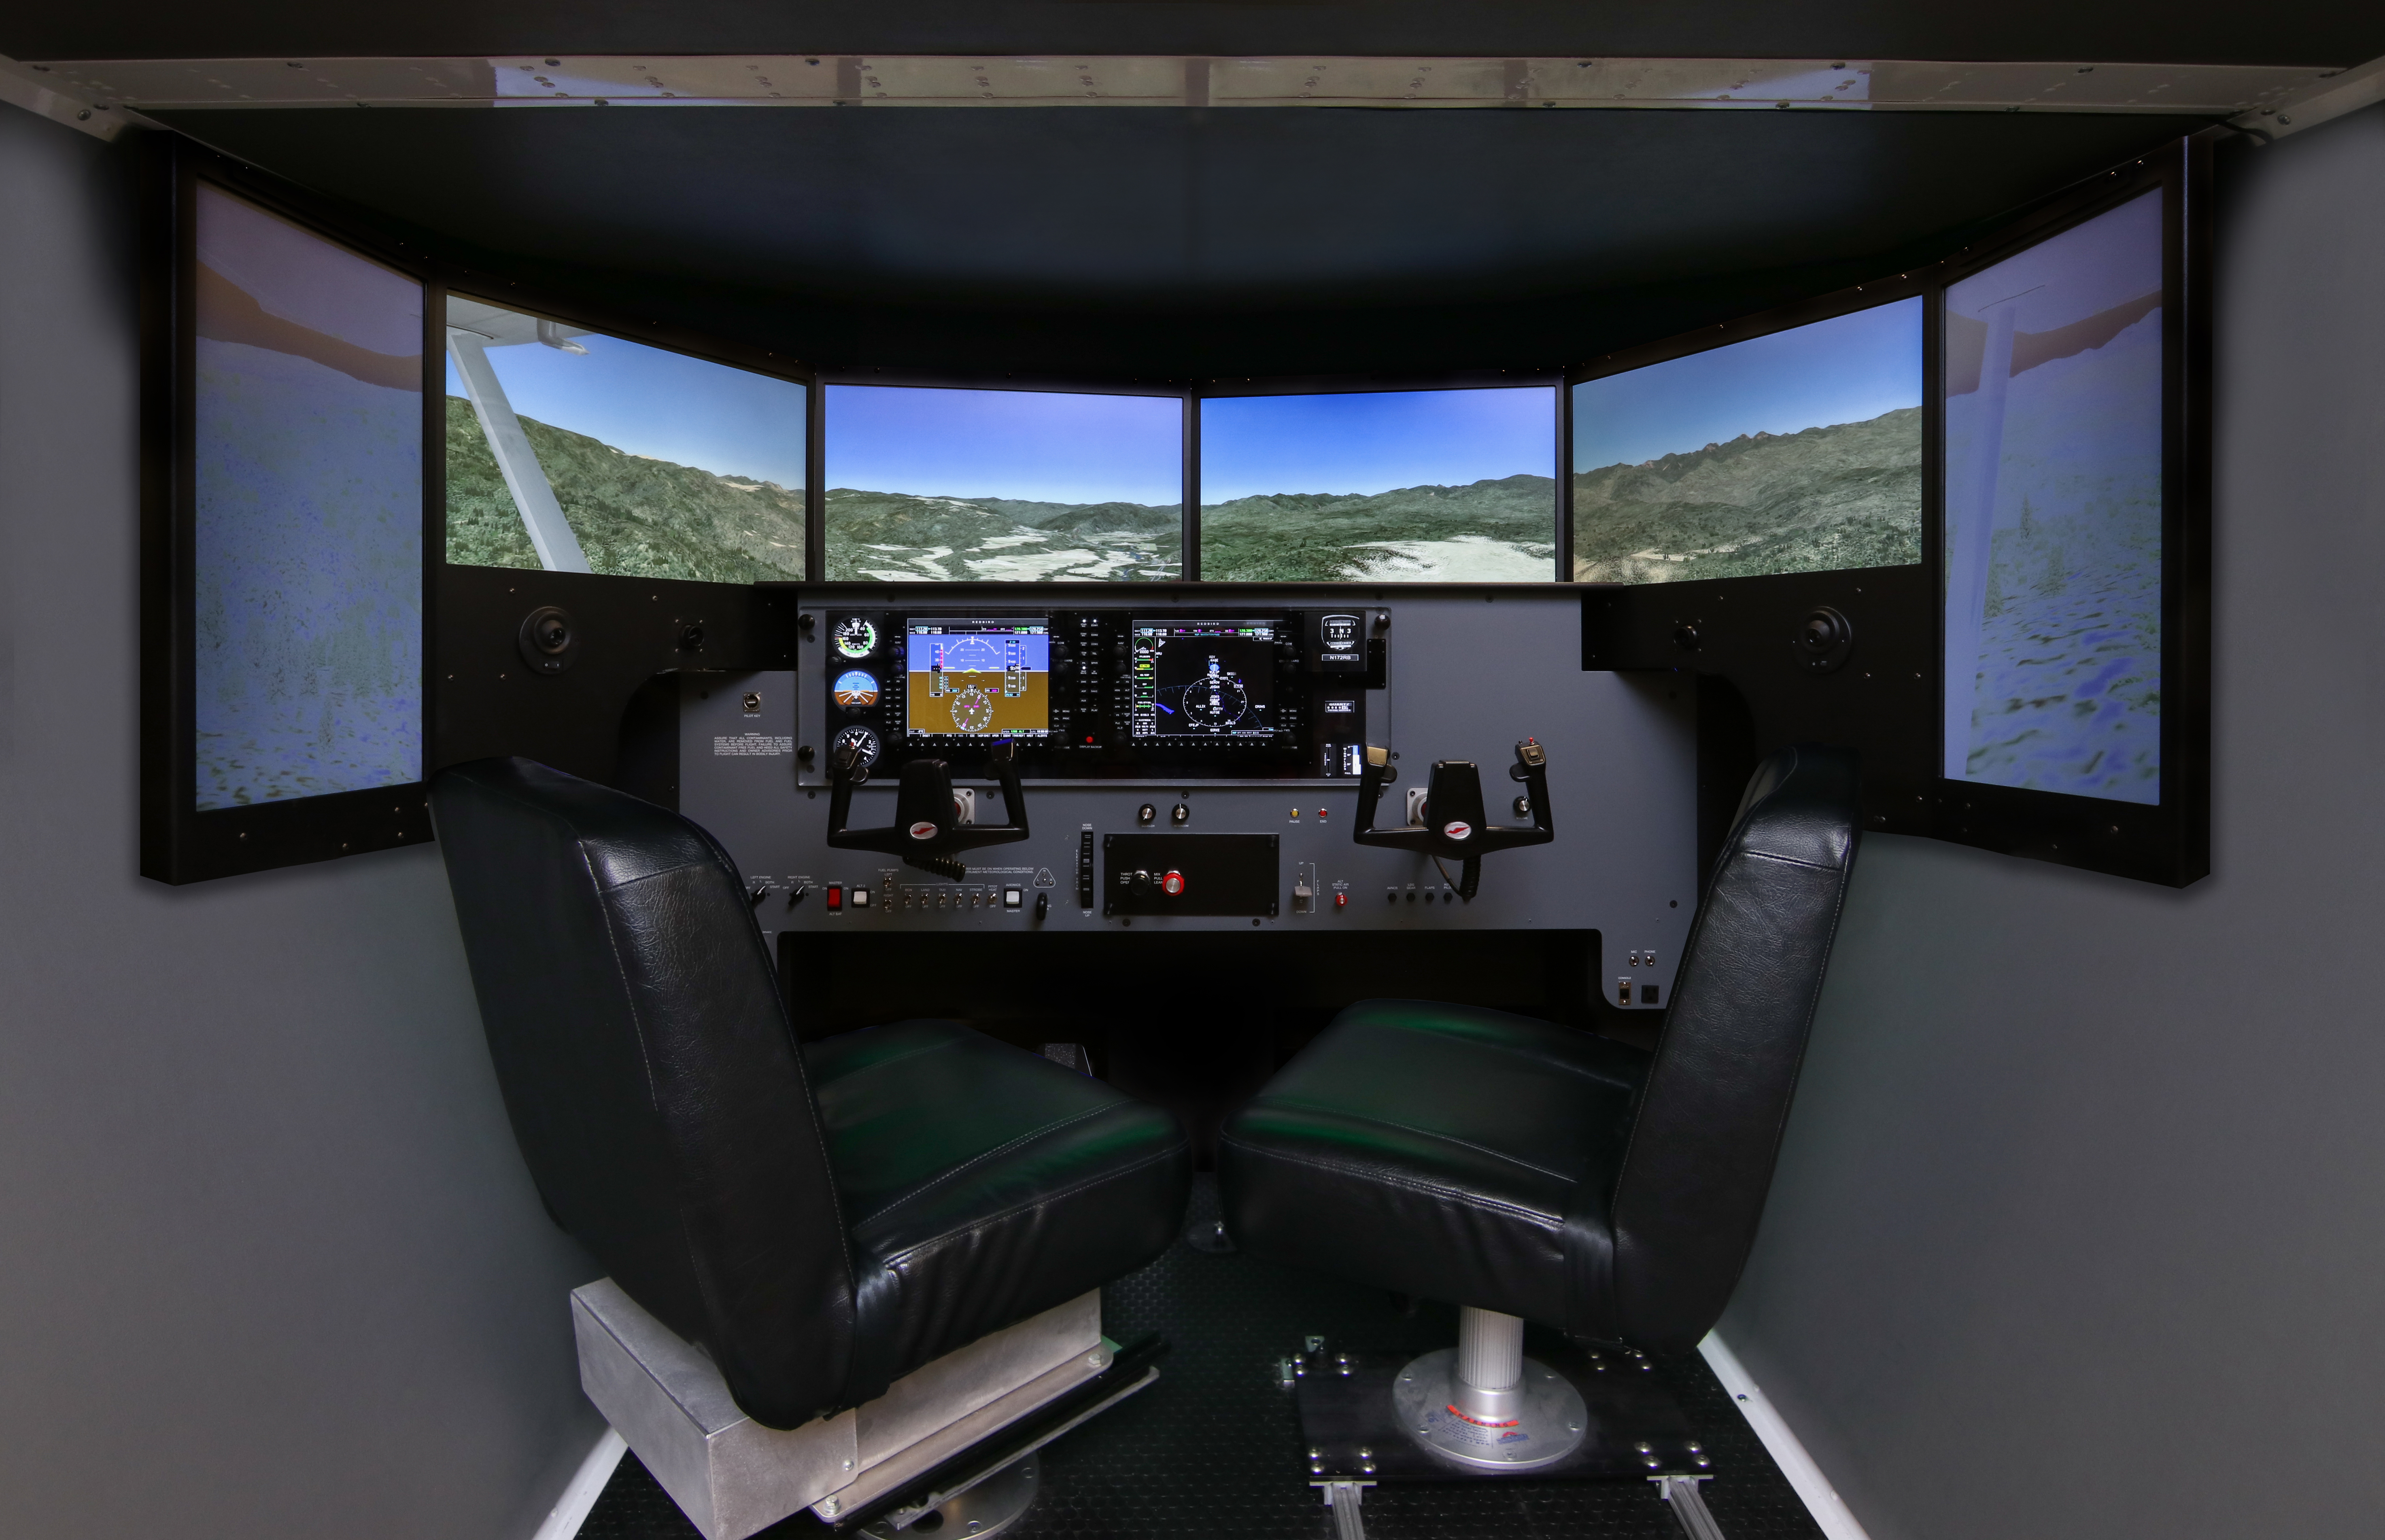 Redbird Flight Introduces an ADS-B Solution for Flight Simulation and Enhances Its Training Technology for Existing Products